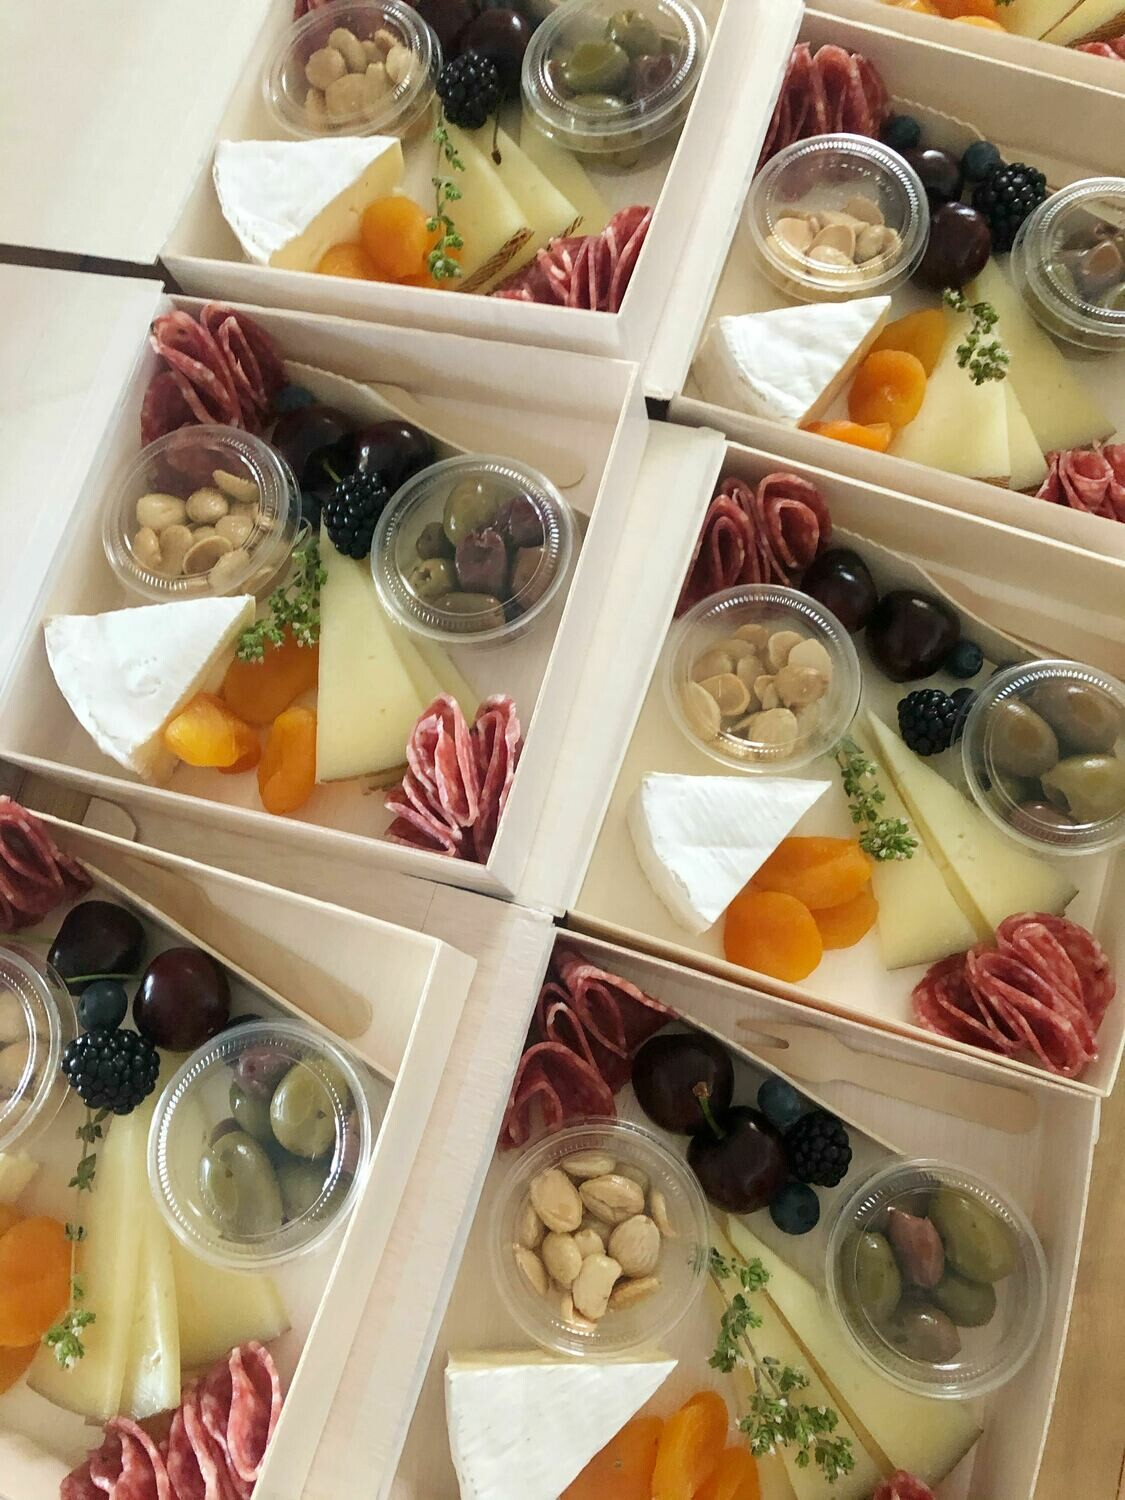 Personal Snack Boxes (MINIMUM ORDER OF 4 BOXES)